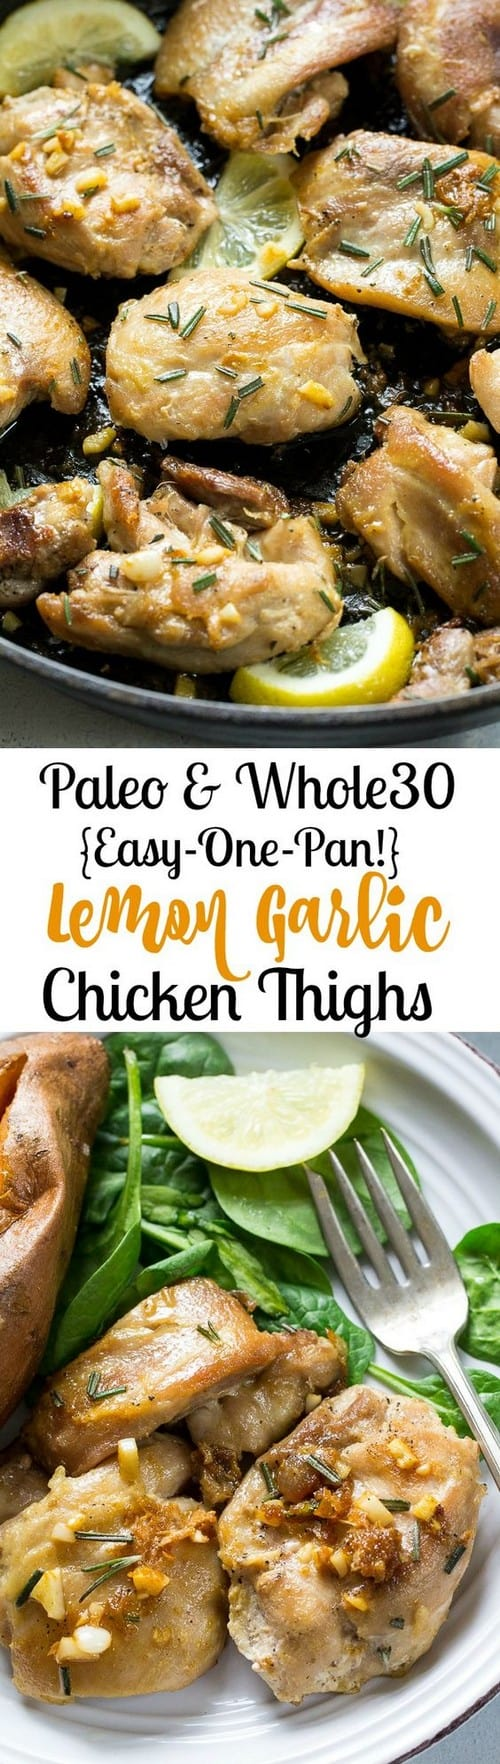 Whole30 Easy Lemon Garlic Chicken Thighs